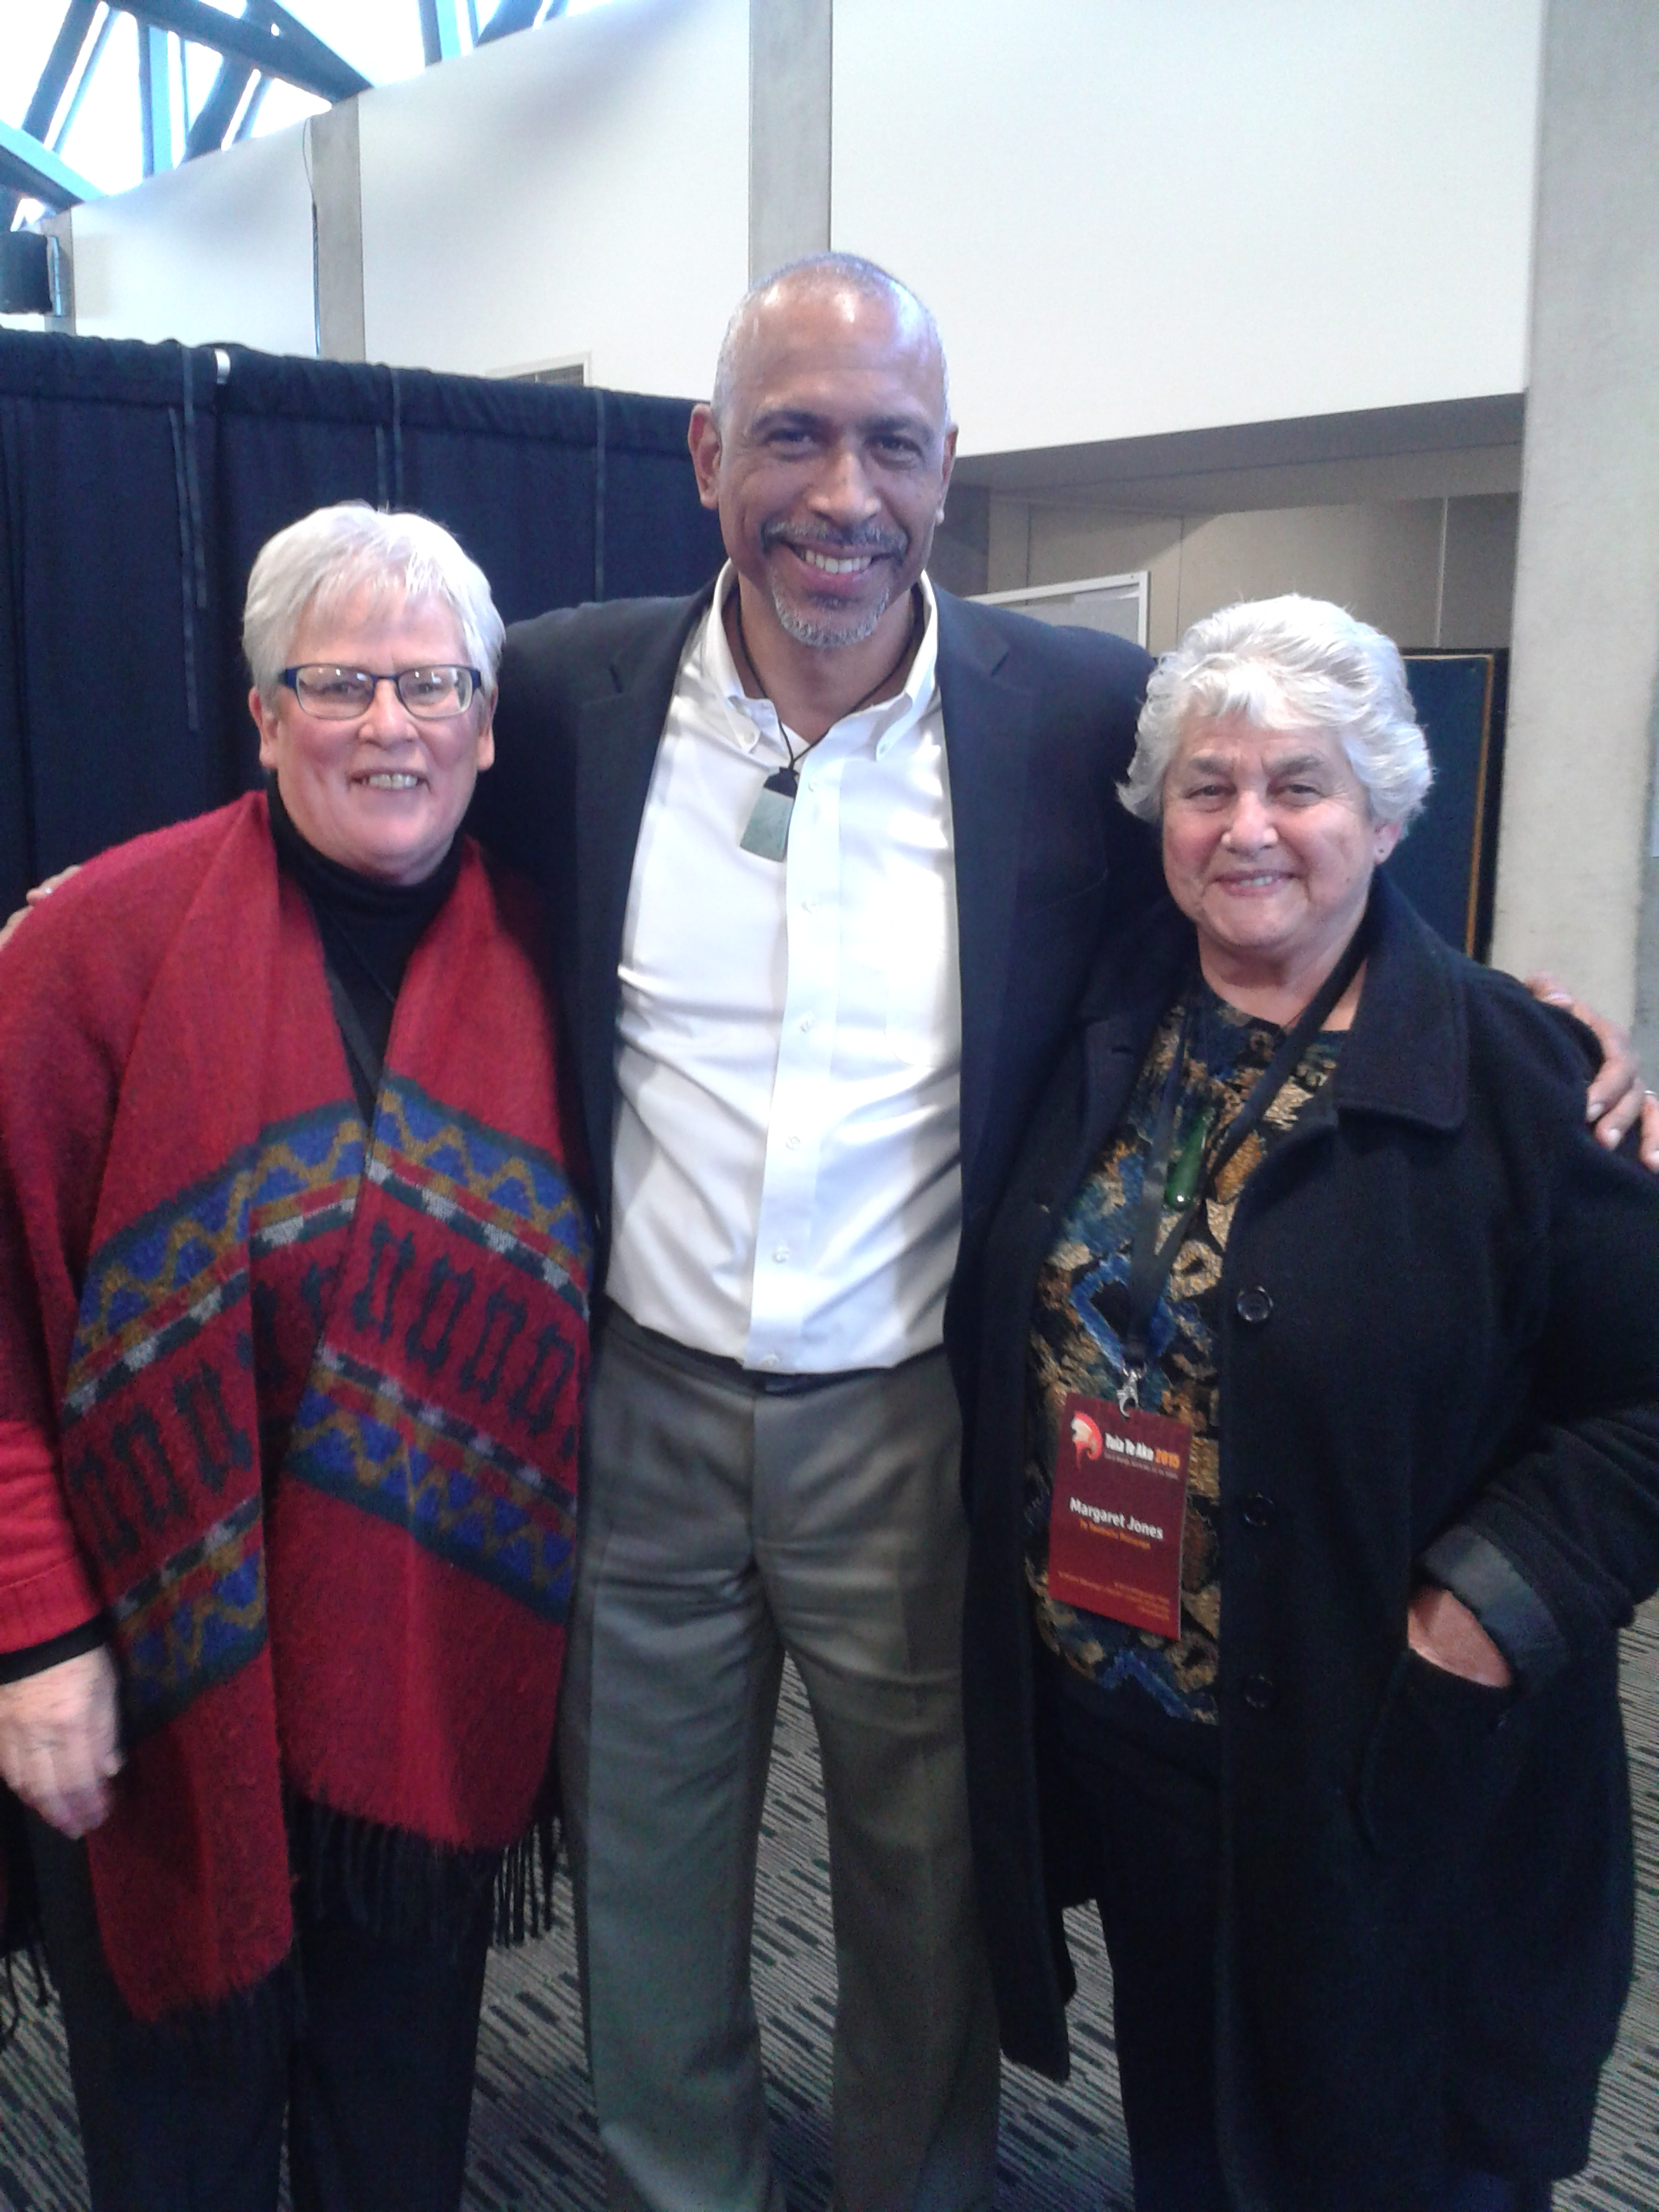 From left, Daphne O'Connell, Dr Pedro Noguera and Aunty Marg Jones.